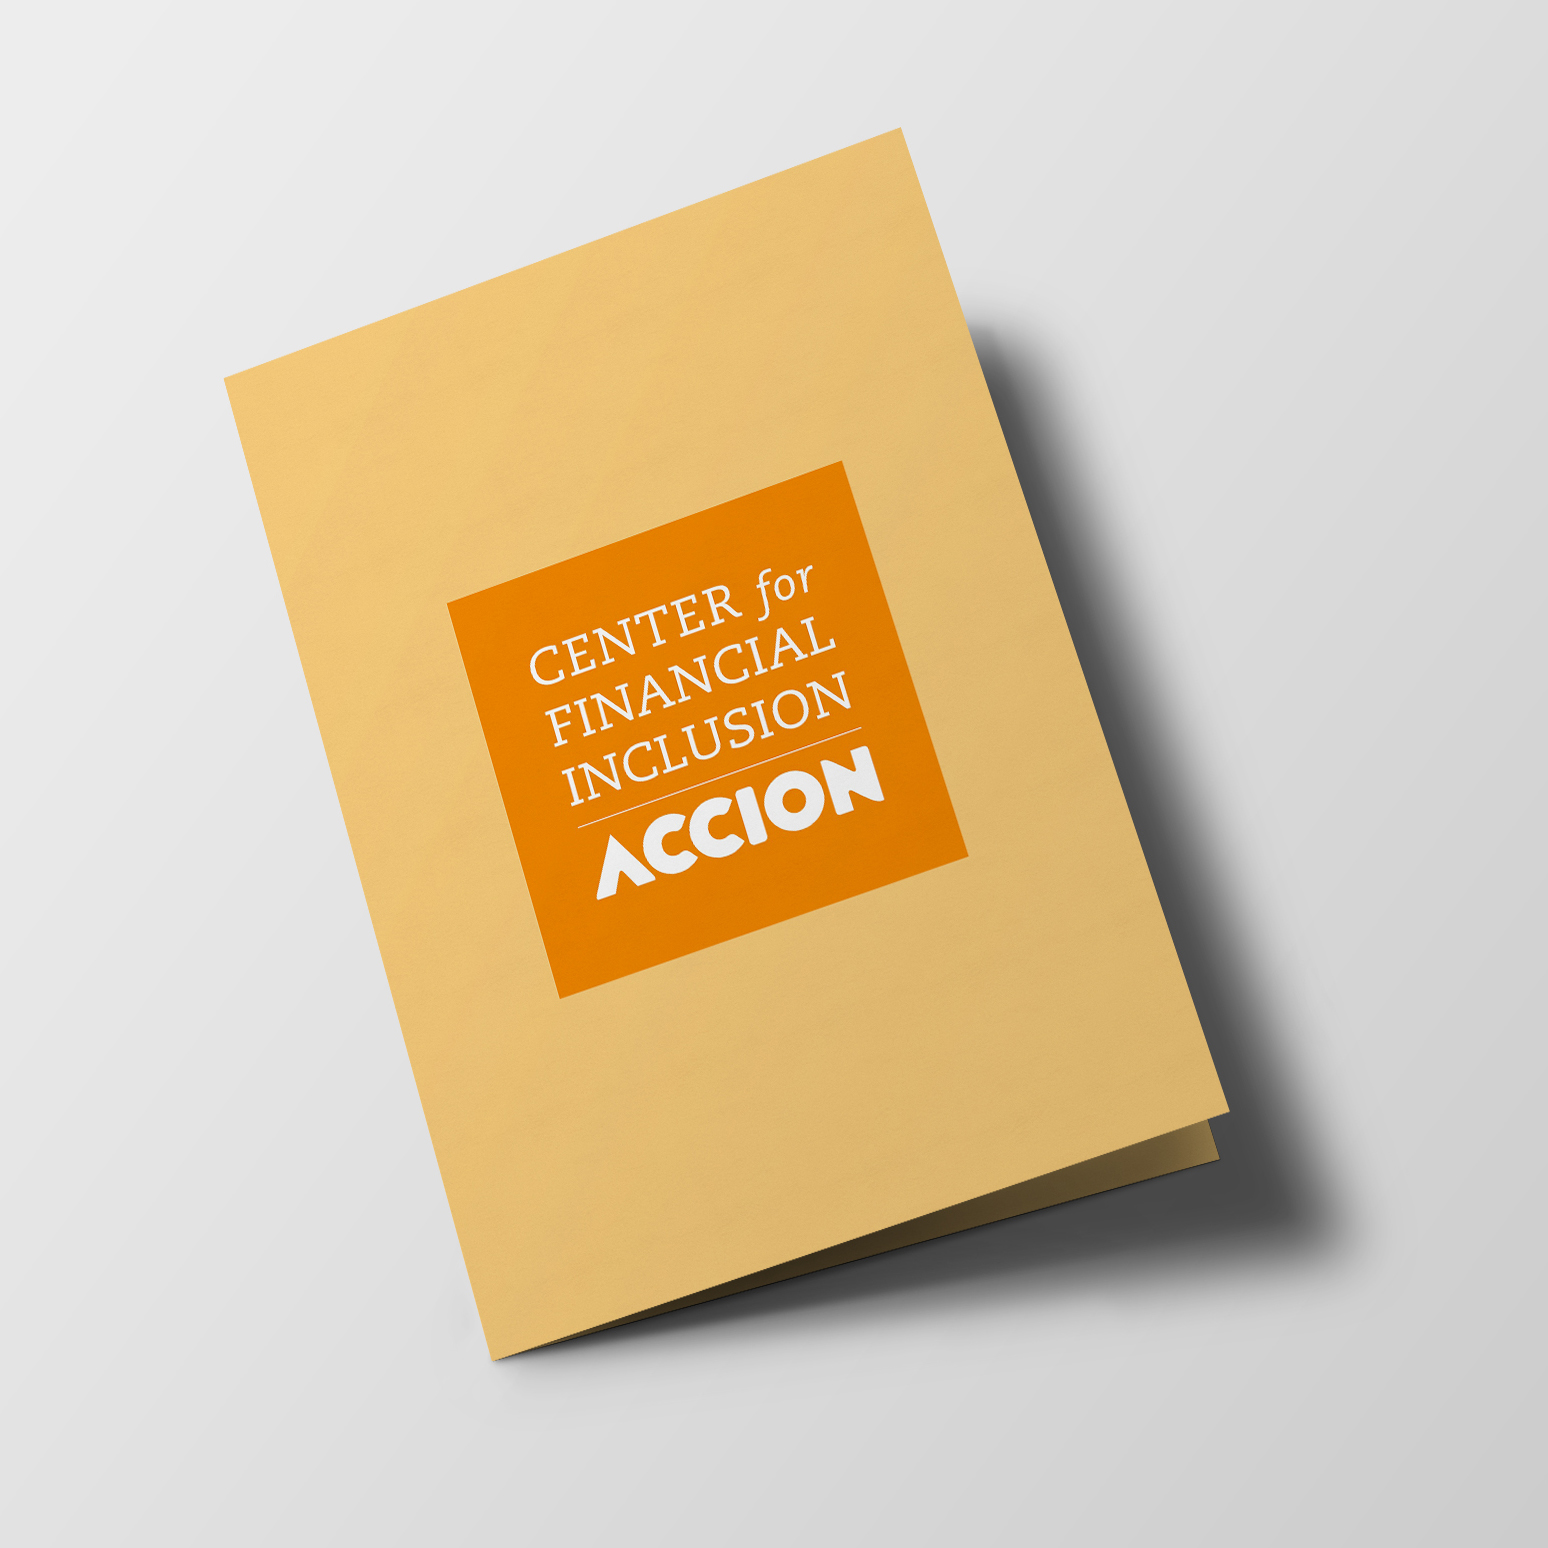 Centre for Financial Inclusion ACCION